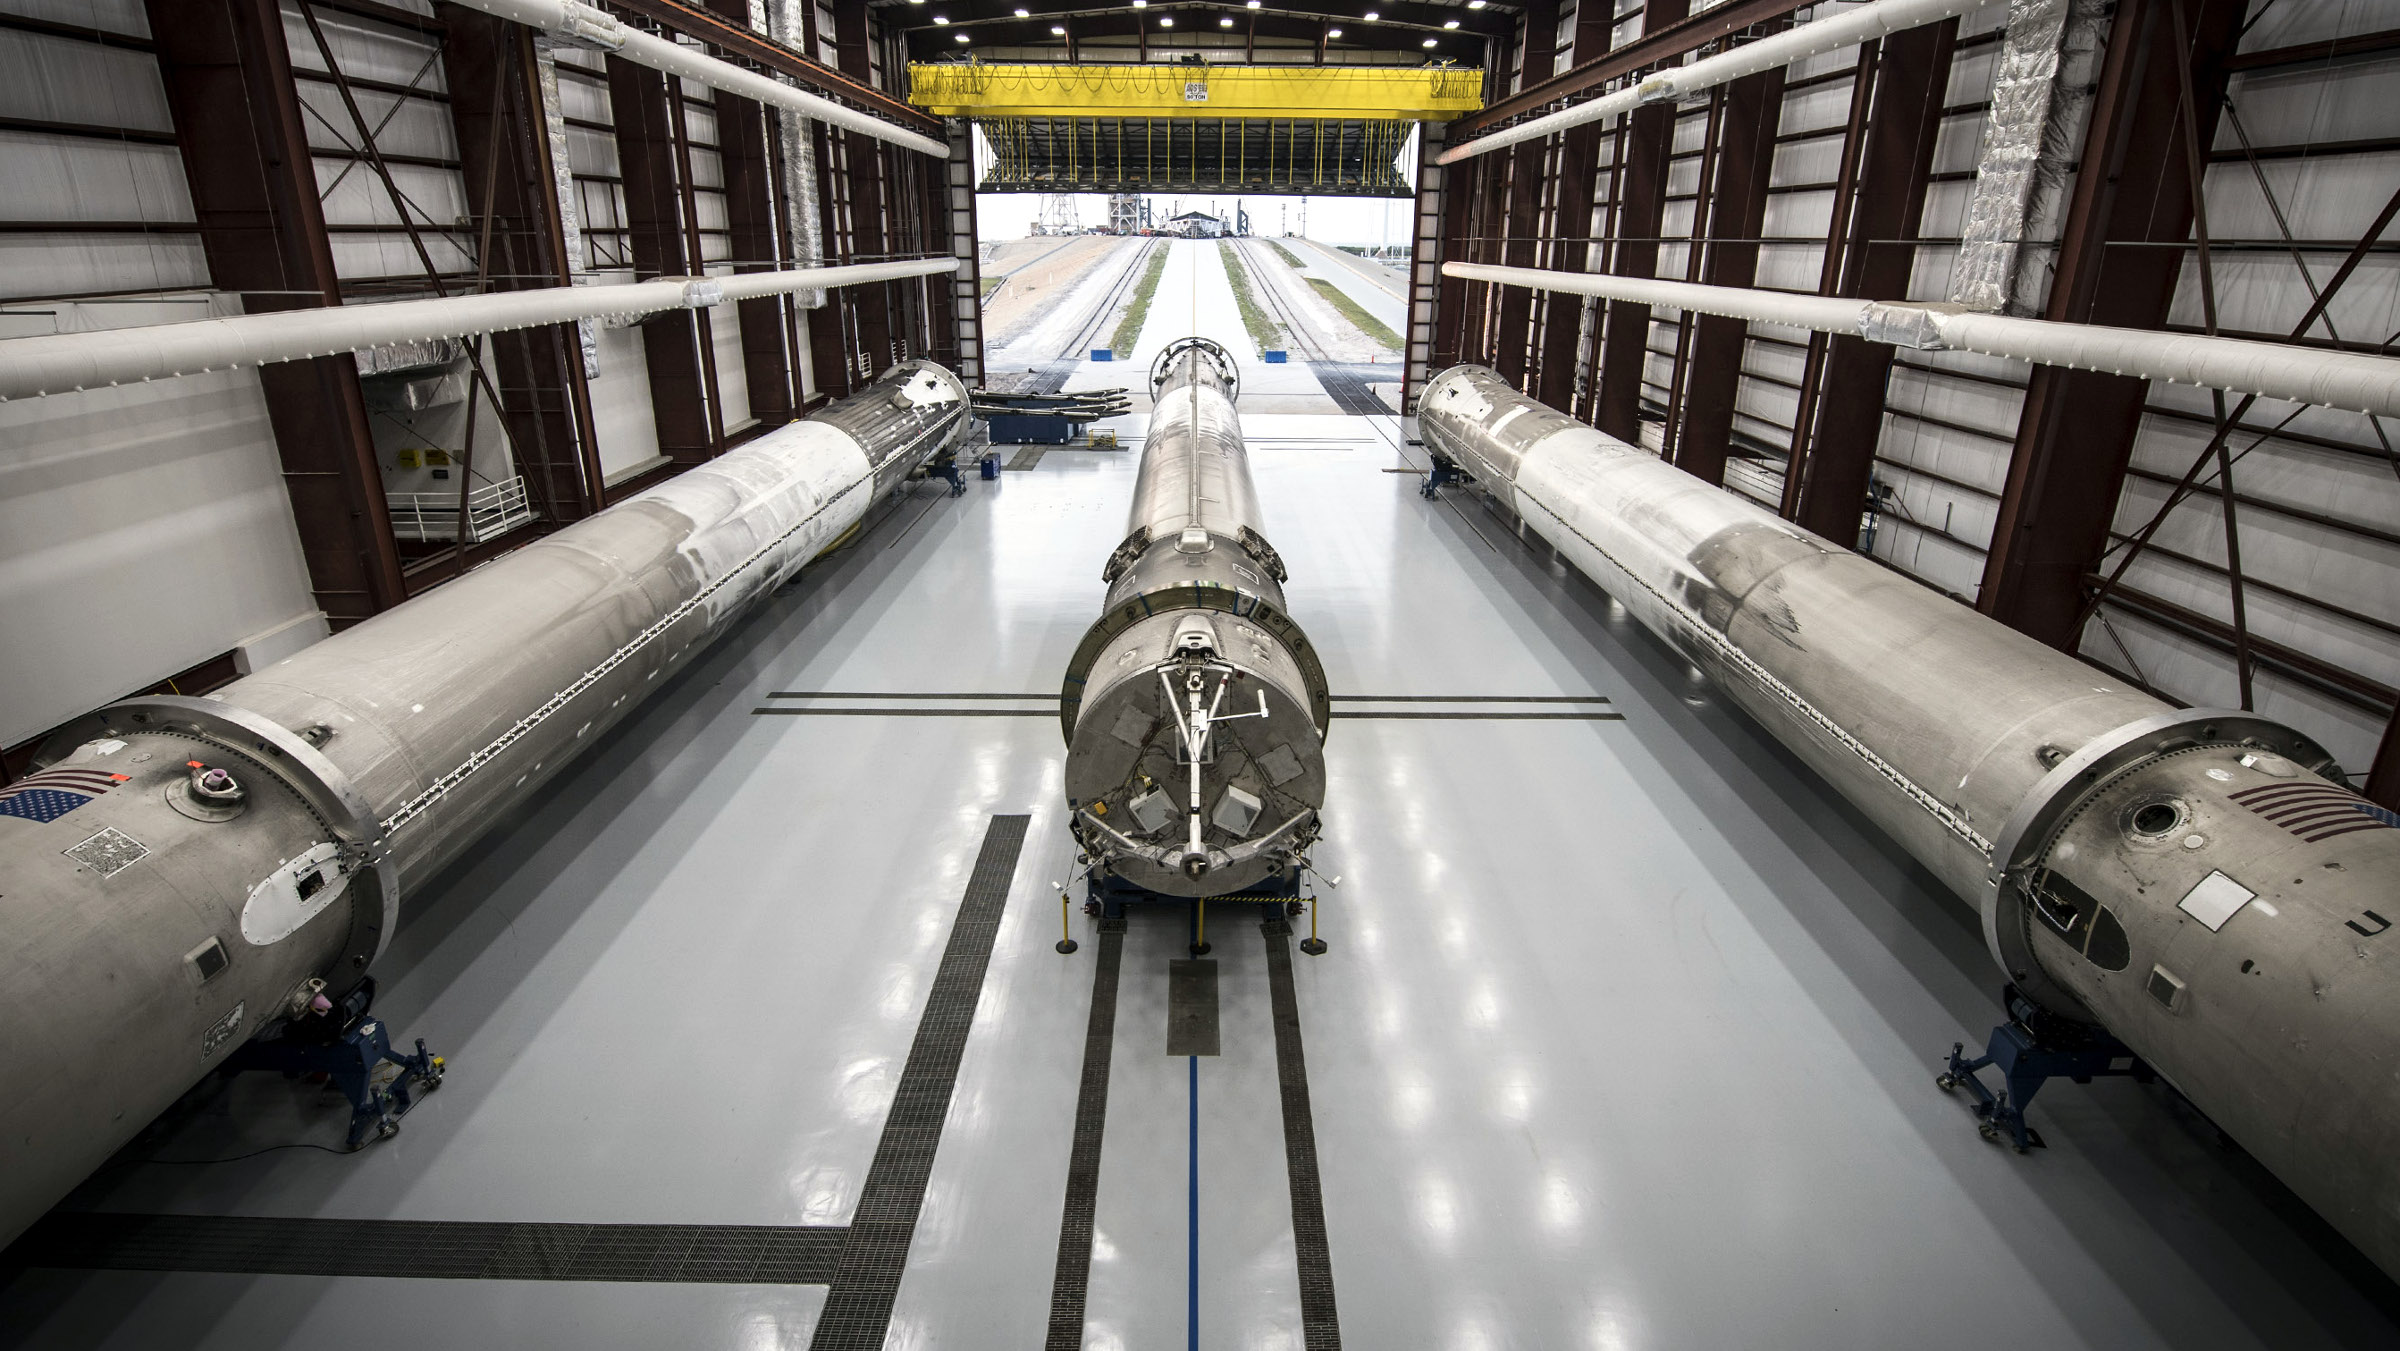 Three lightly-used SpaceX Falcon 9 rockets await a second launch.